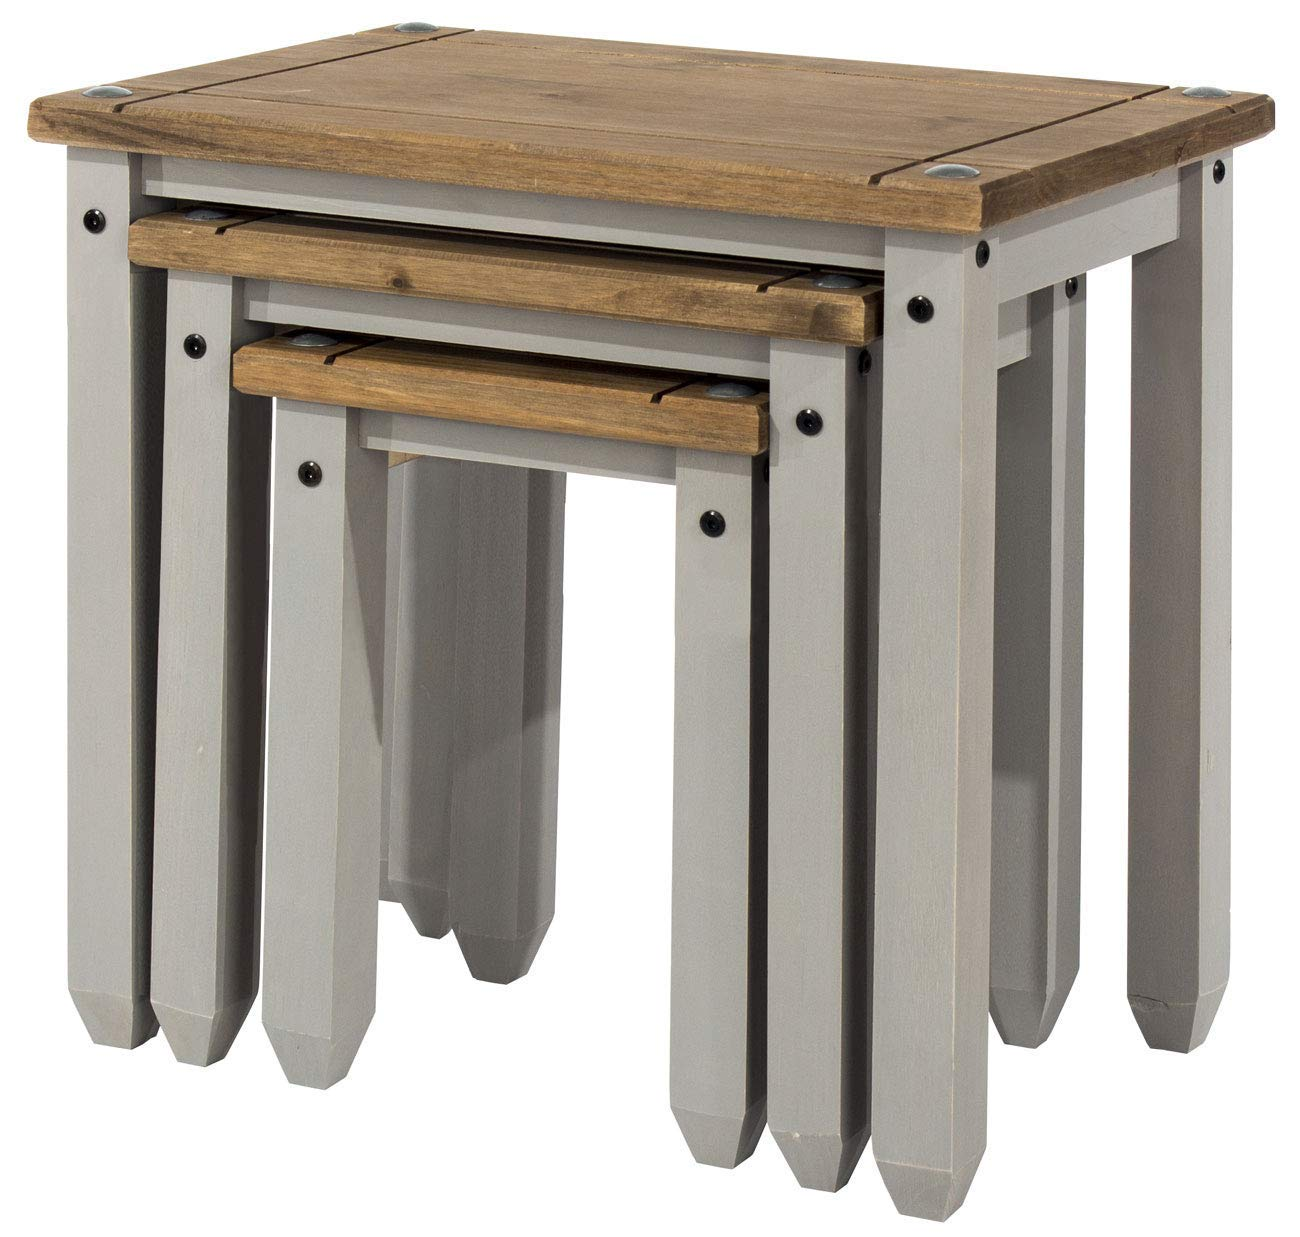 Core Products Corona Grey Nest of Tables Distressed Waxed Pine Finish